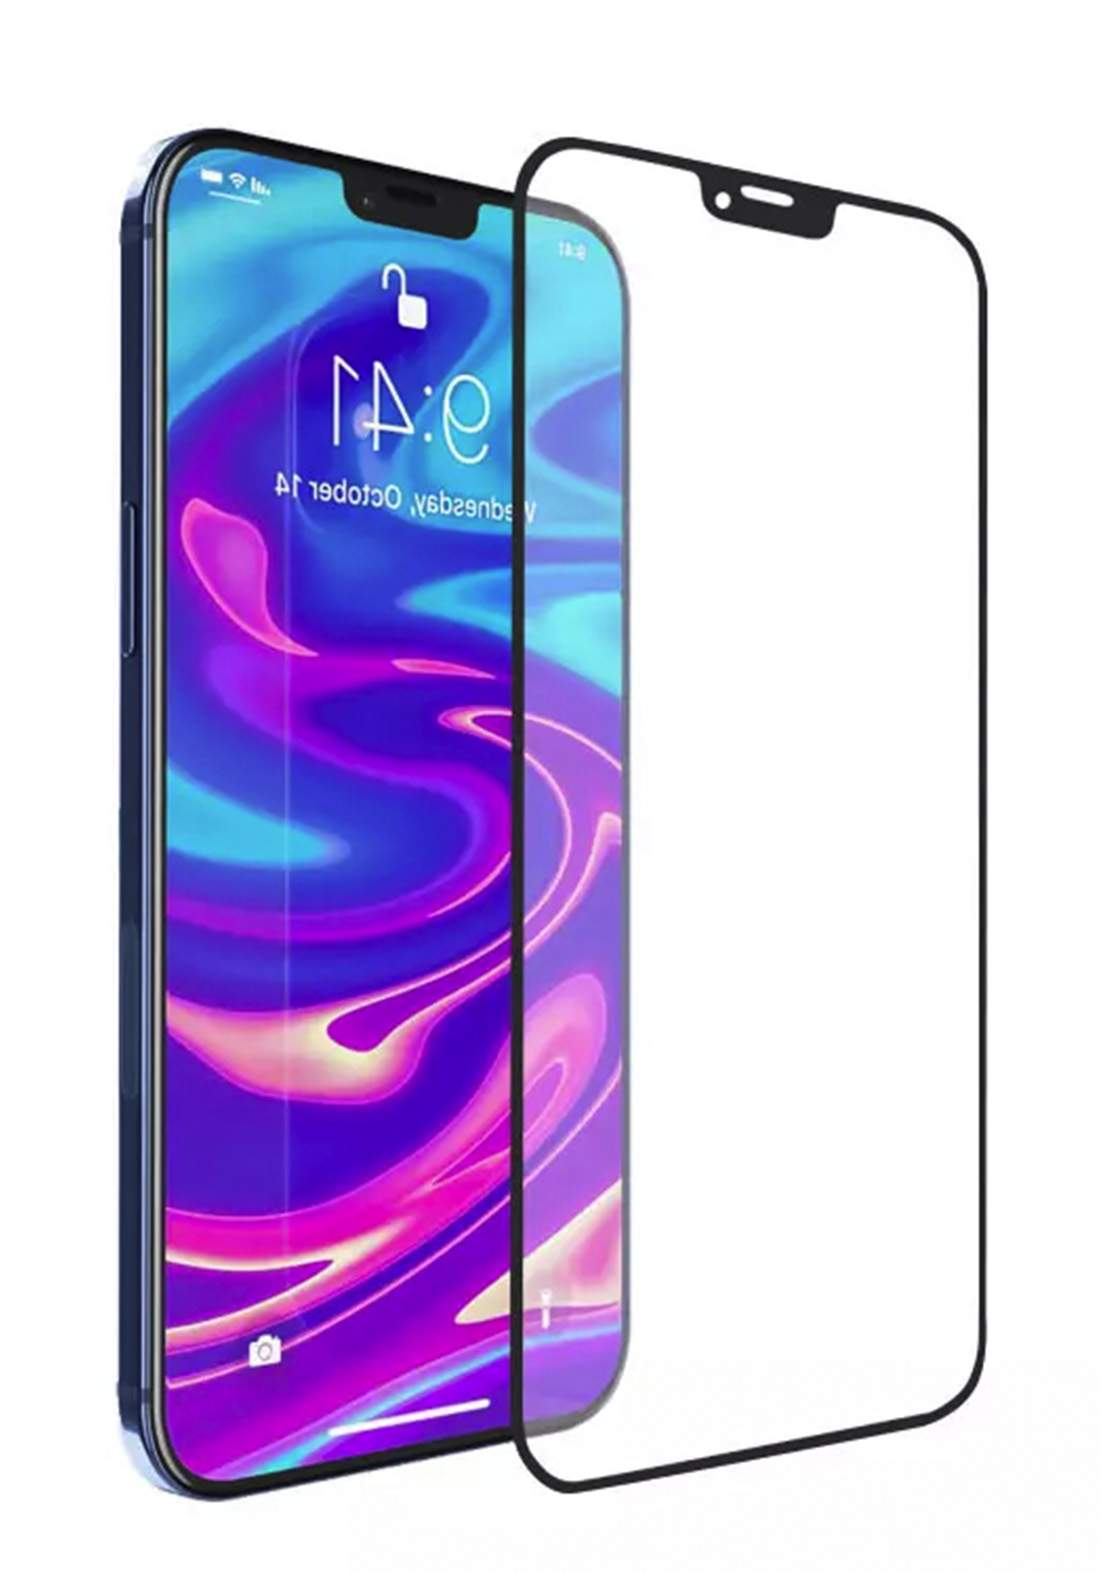 WIWU iVista 2.5D HD Tempered Glass Screen Protector for iPhone 12 Pro Max  واقي شاشة